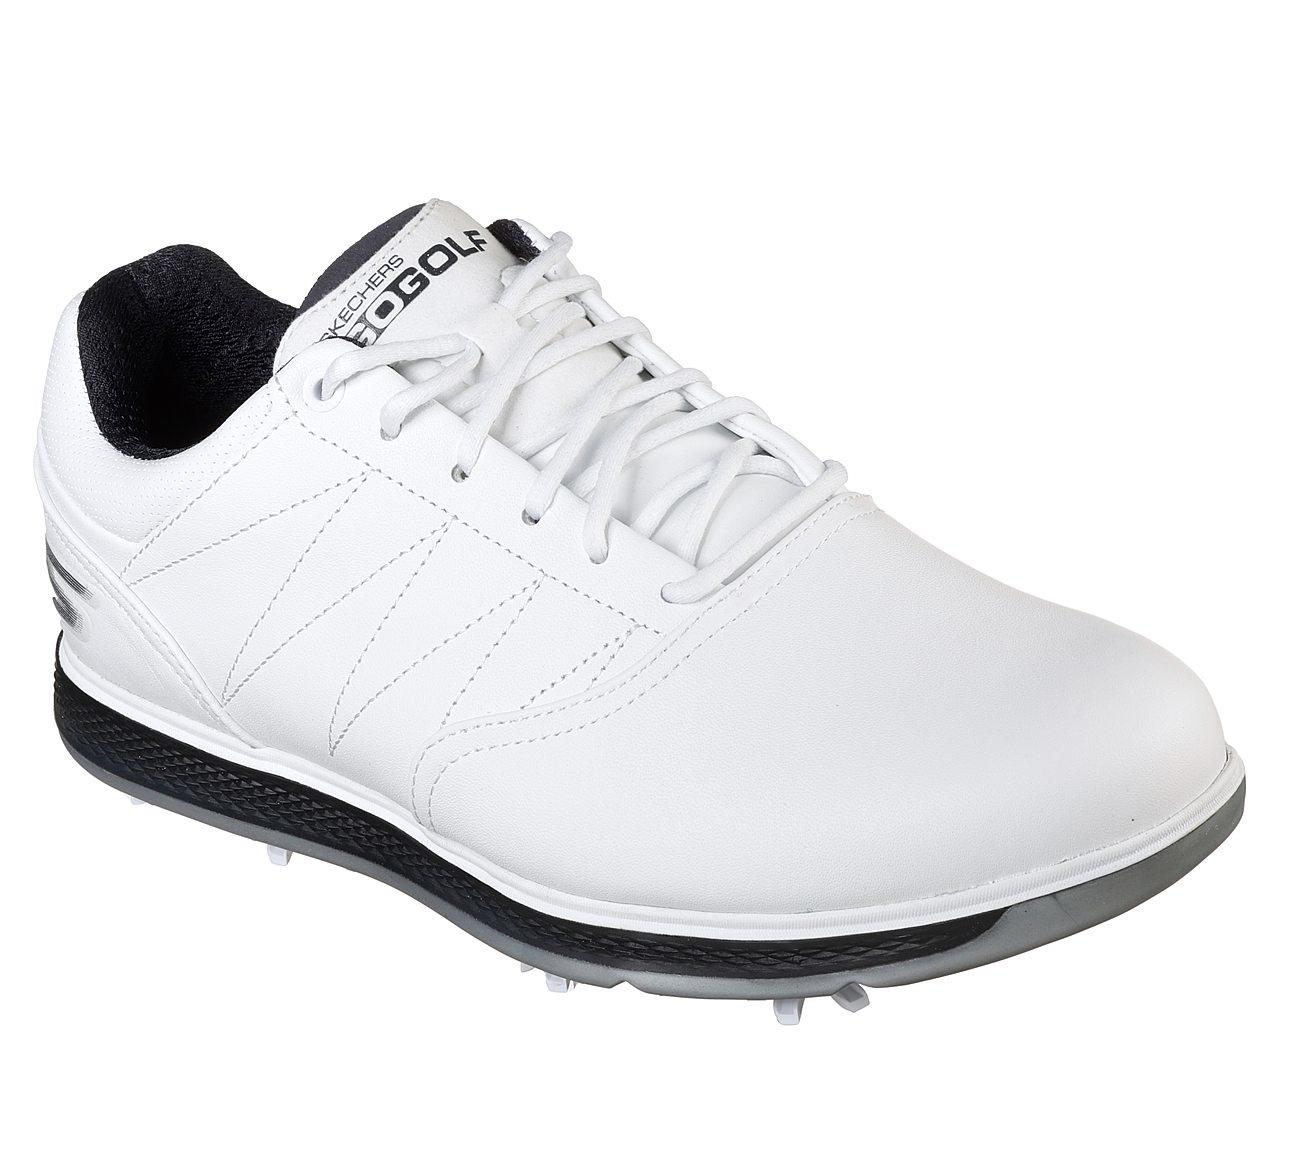 Skechers Golf Golf ProV3 White